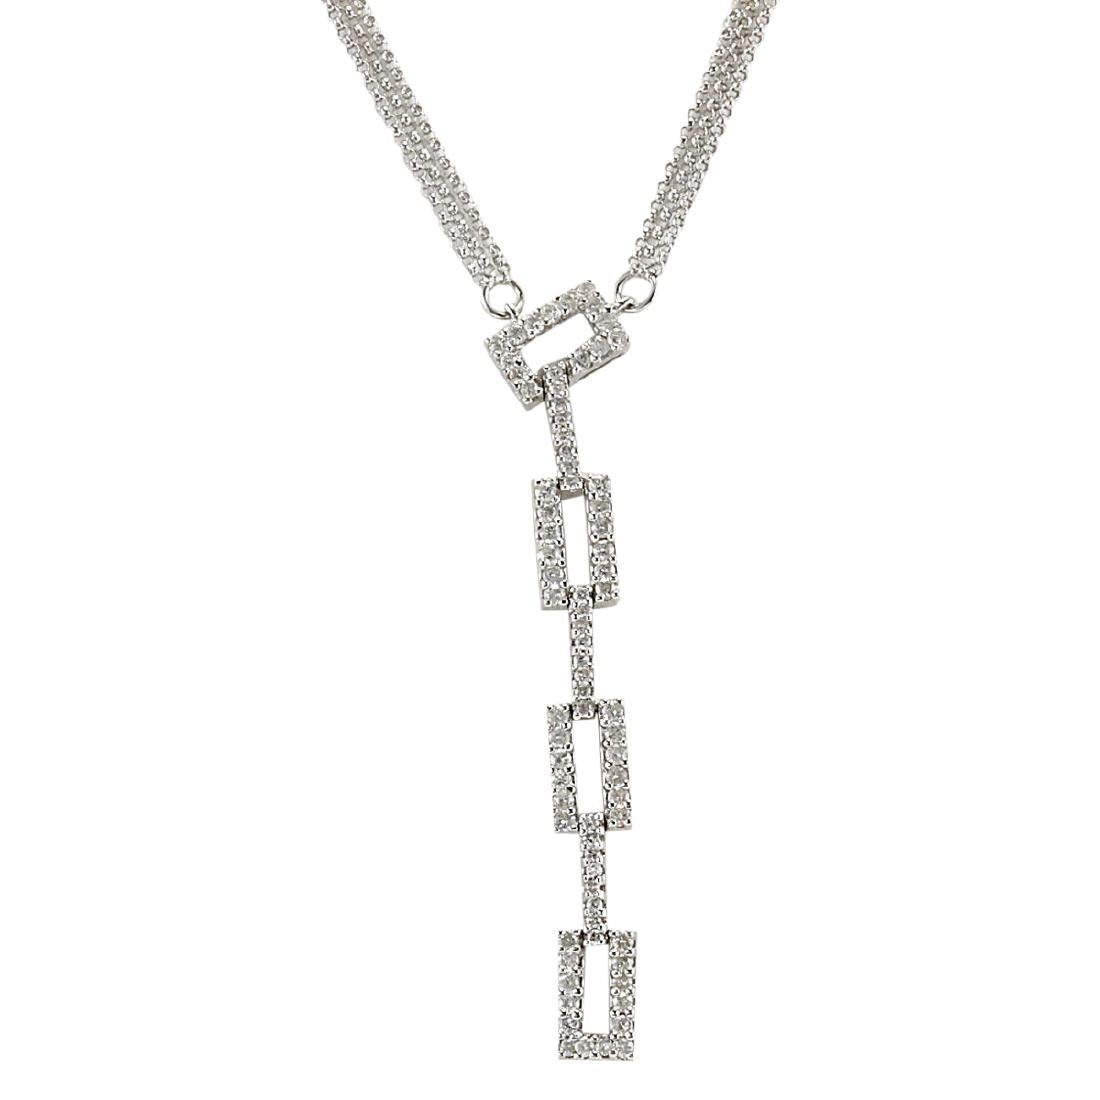 1.04 CTW Natural Diamond Necklace In 18K White Gold